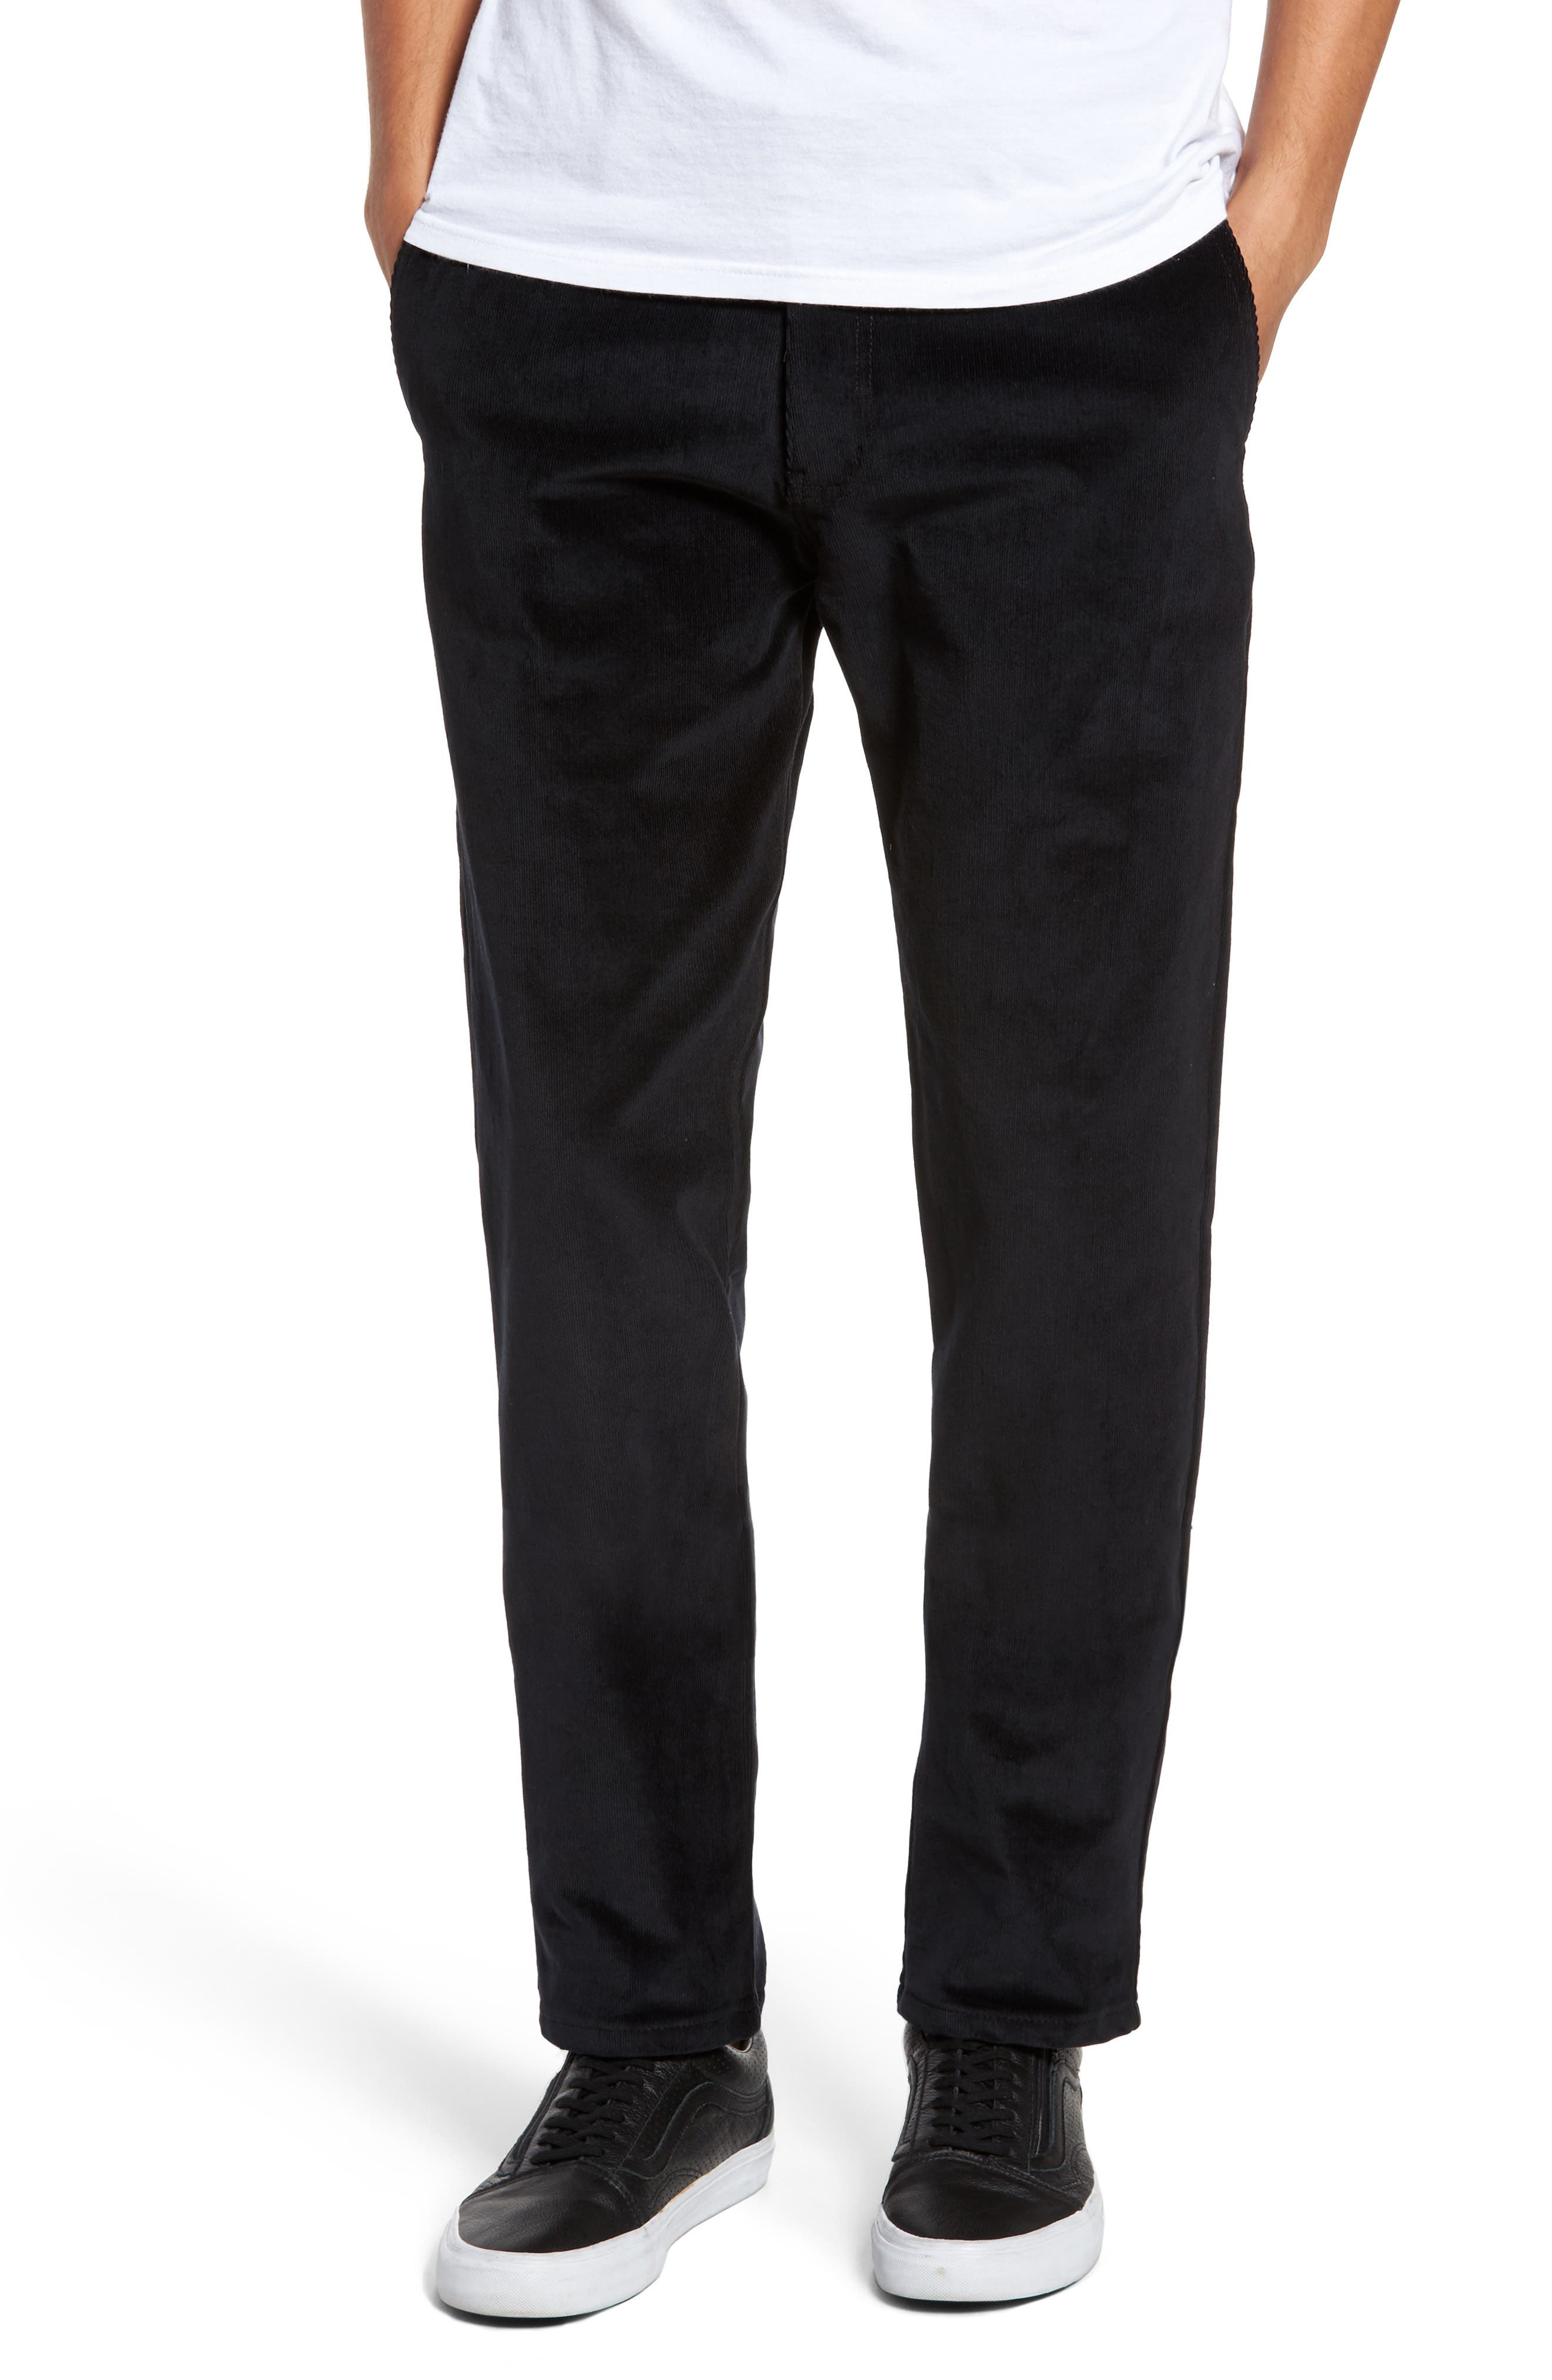 Naked & Famous Slim Chino Slim Fit Corduroy Pants,                         Main,                         color,